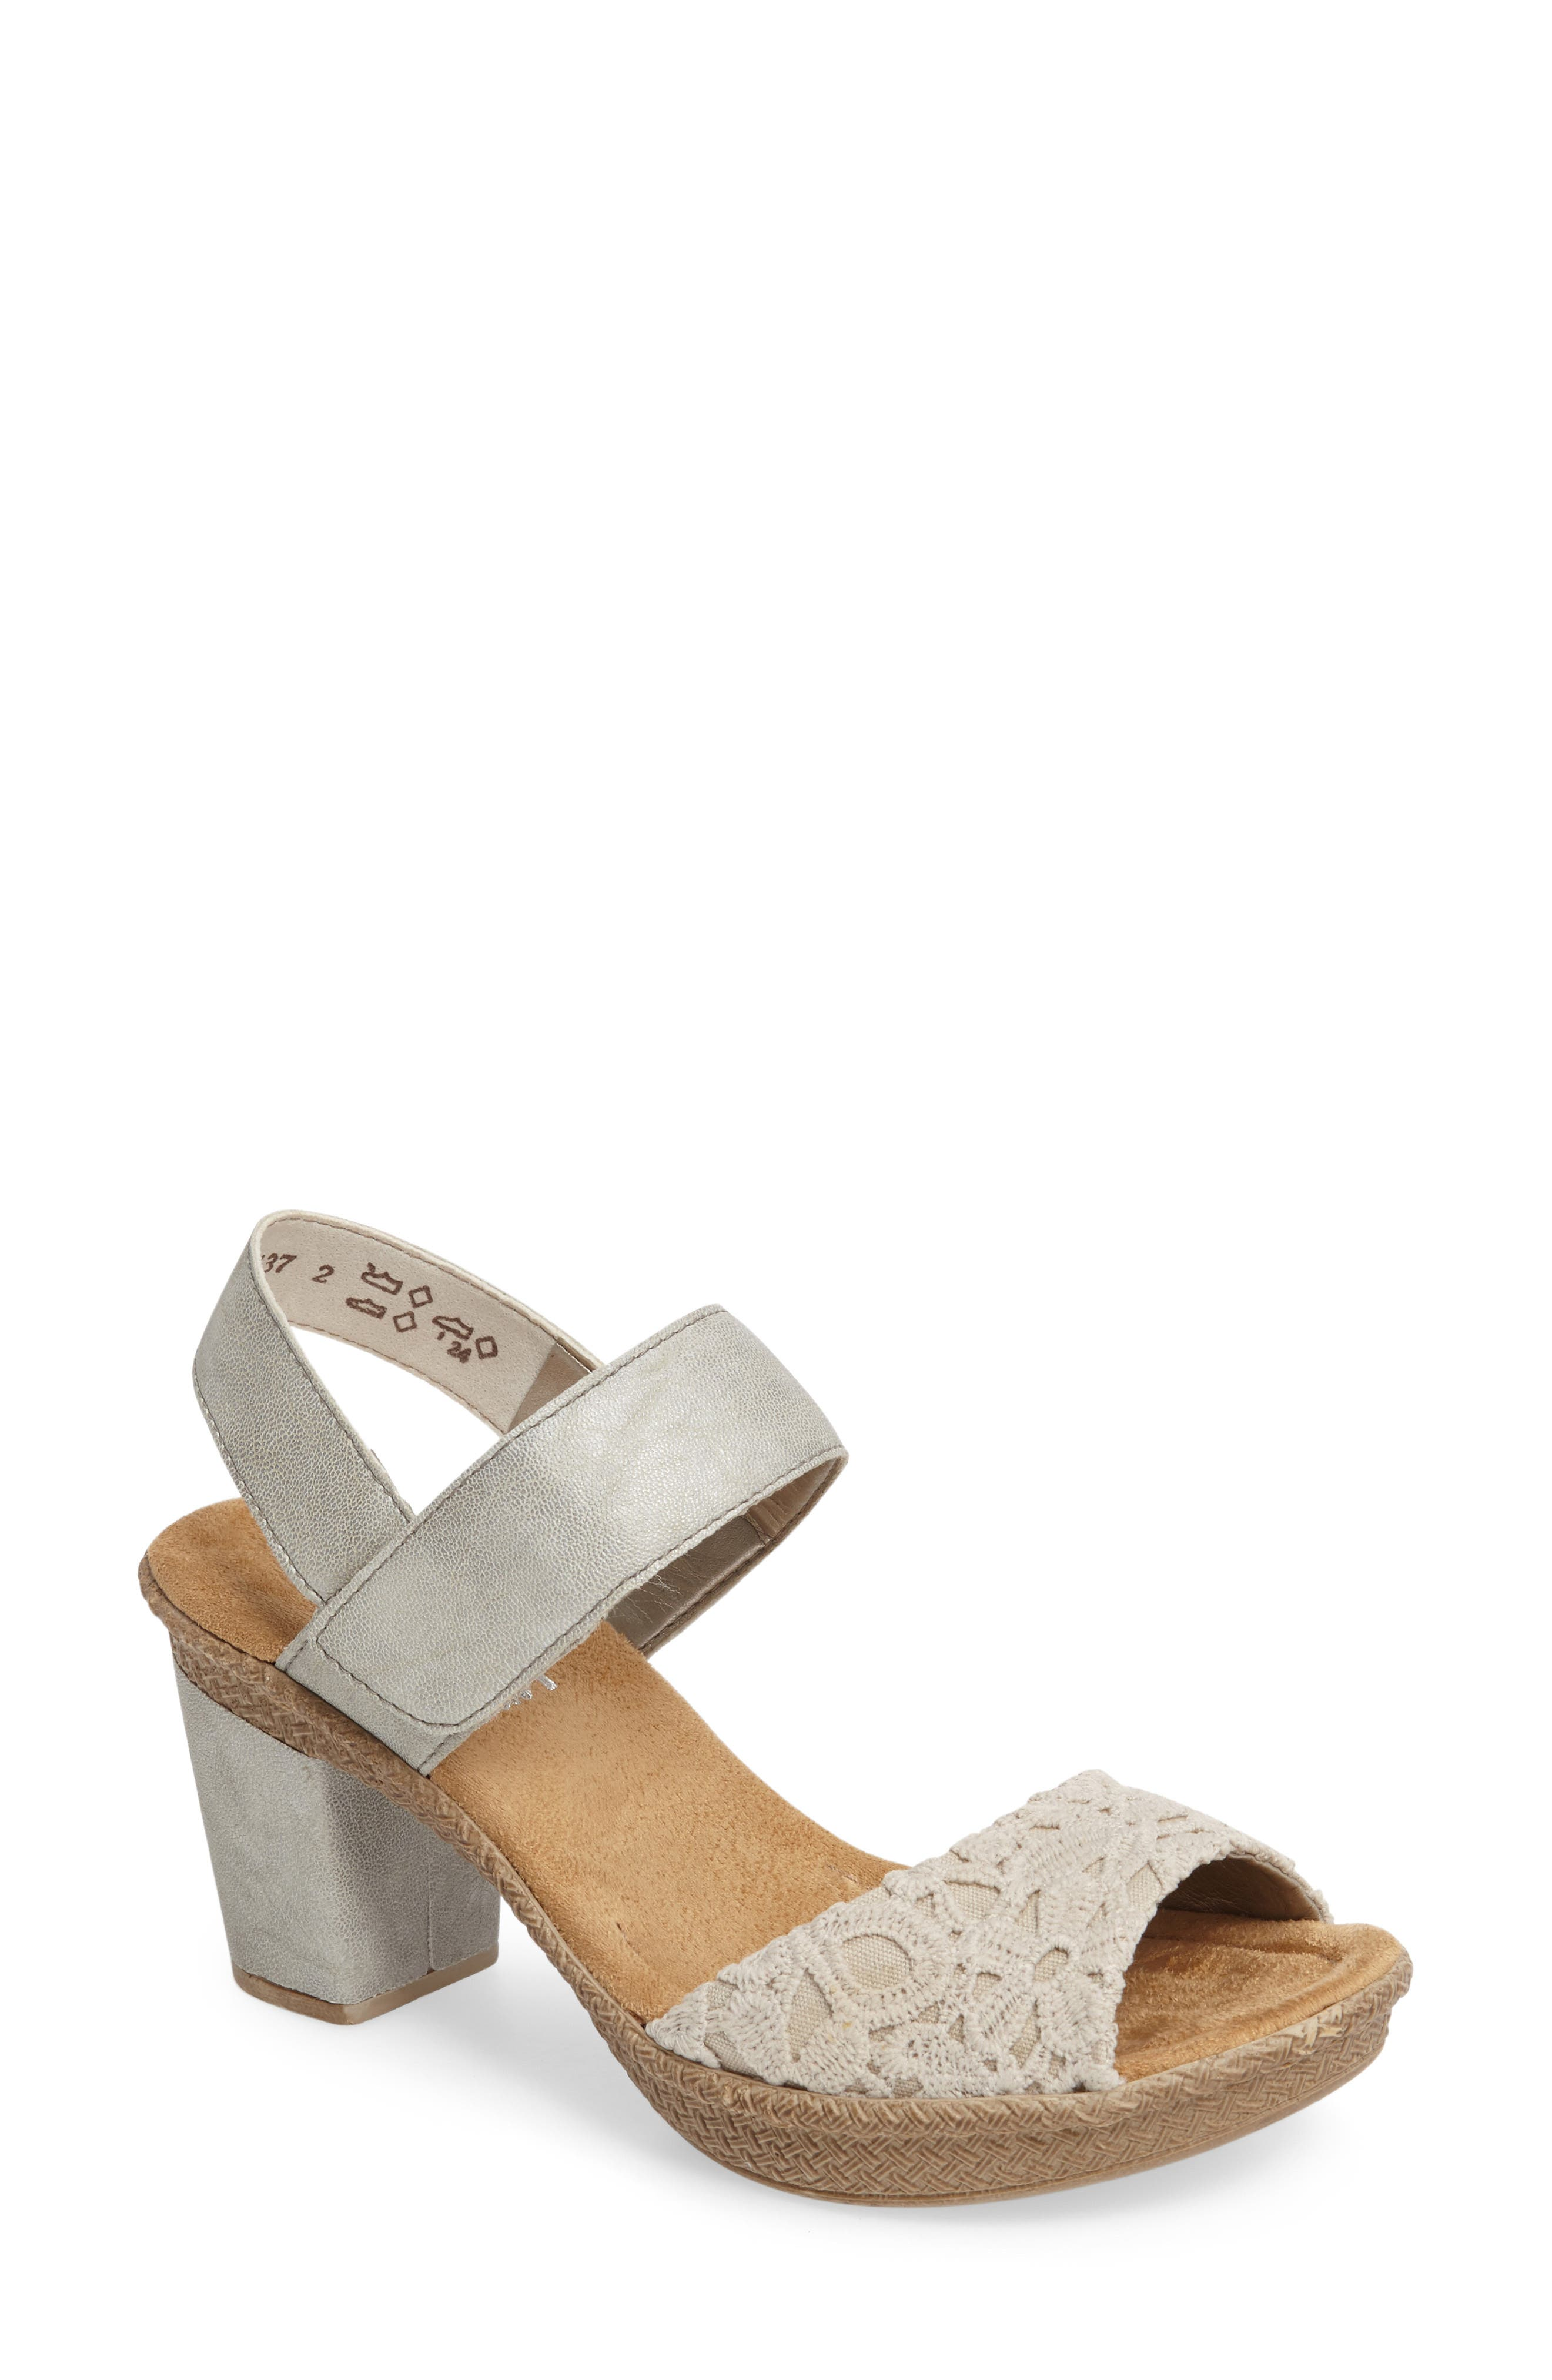 Alternate Image 1 Selected - Rieker Antistress Rabea 61 Sandal (Women)